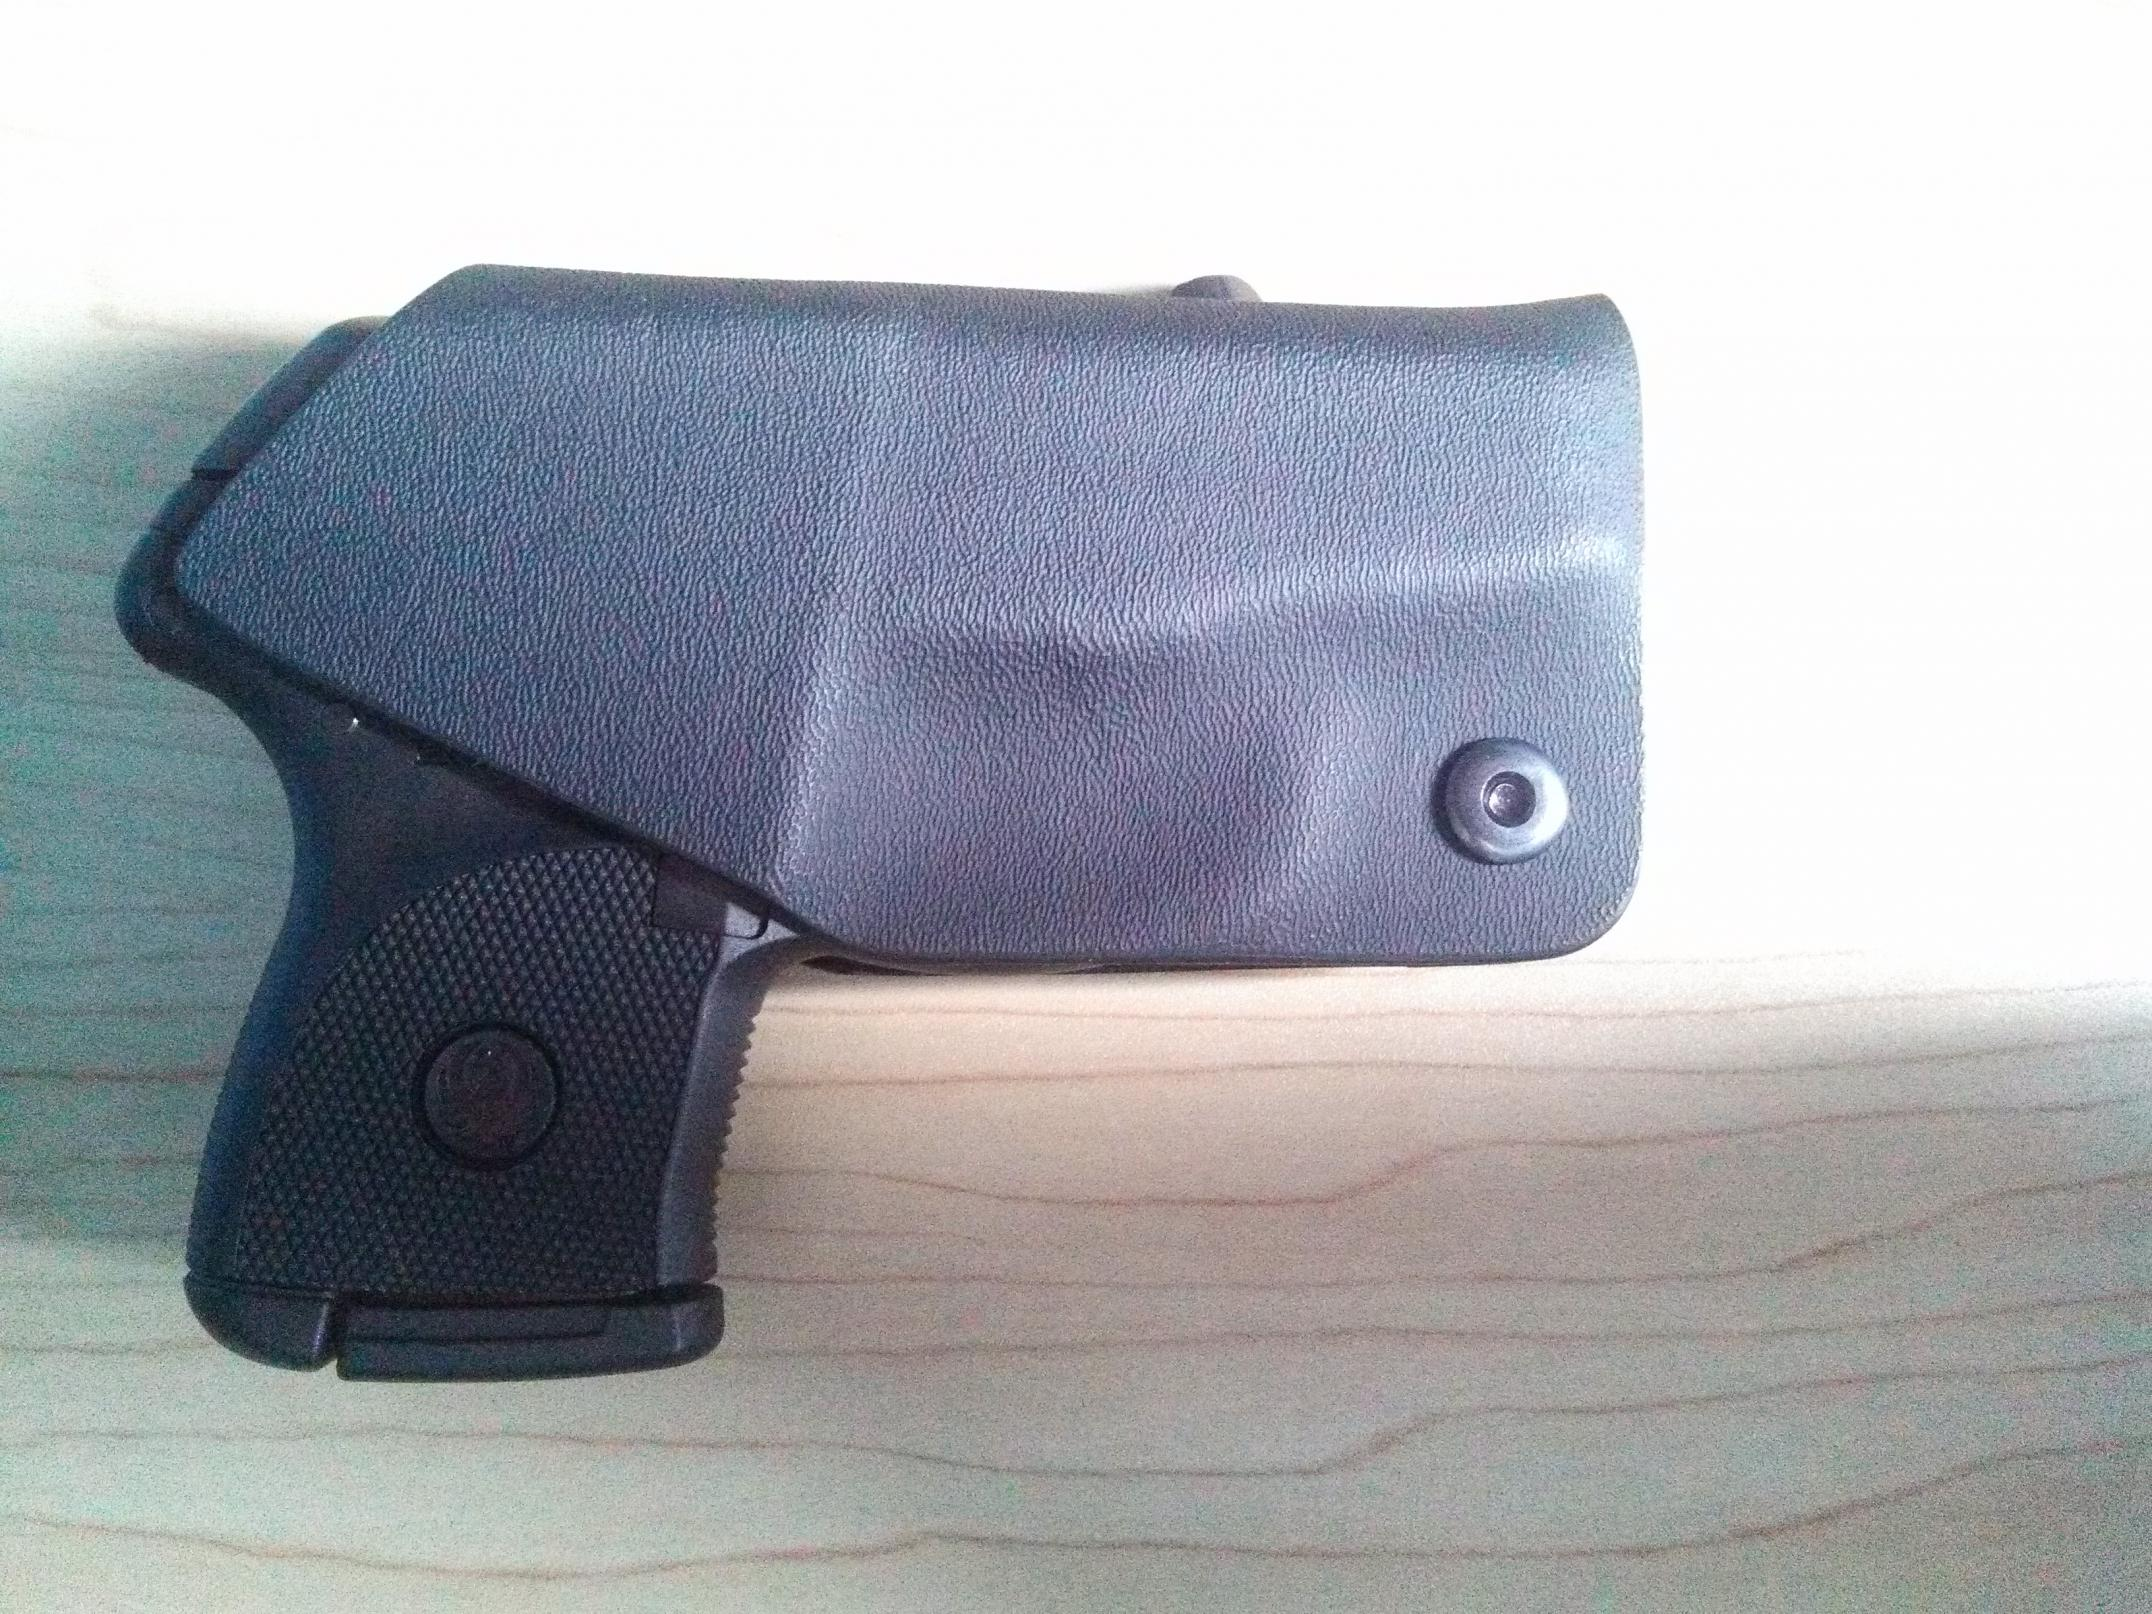 Aholster Pwii Review-img_20130317_141905_713.jpg